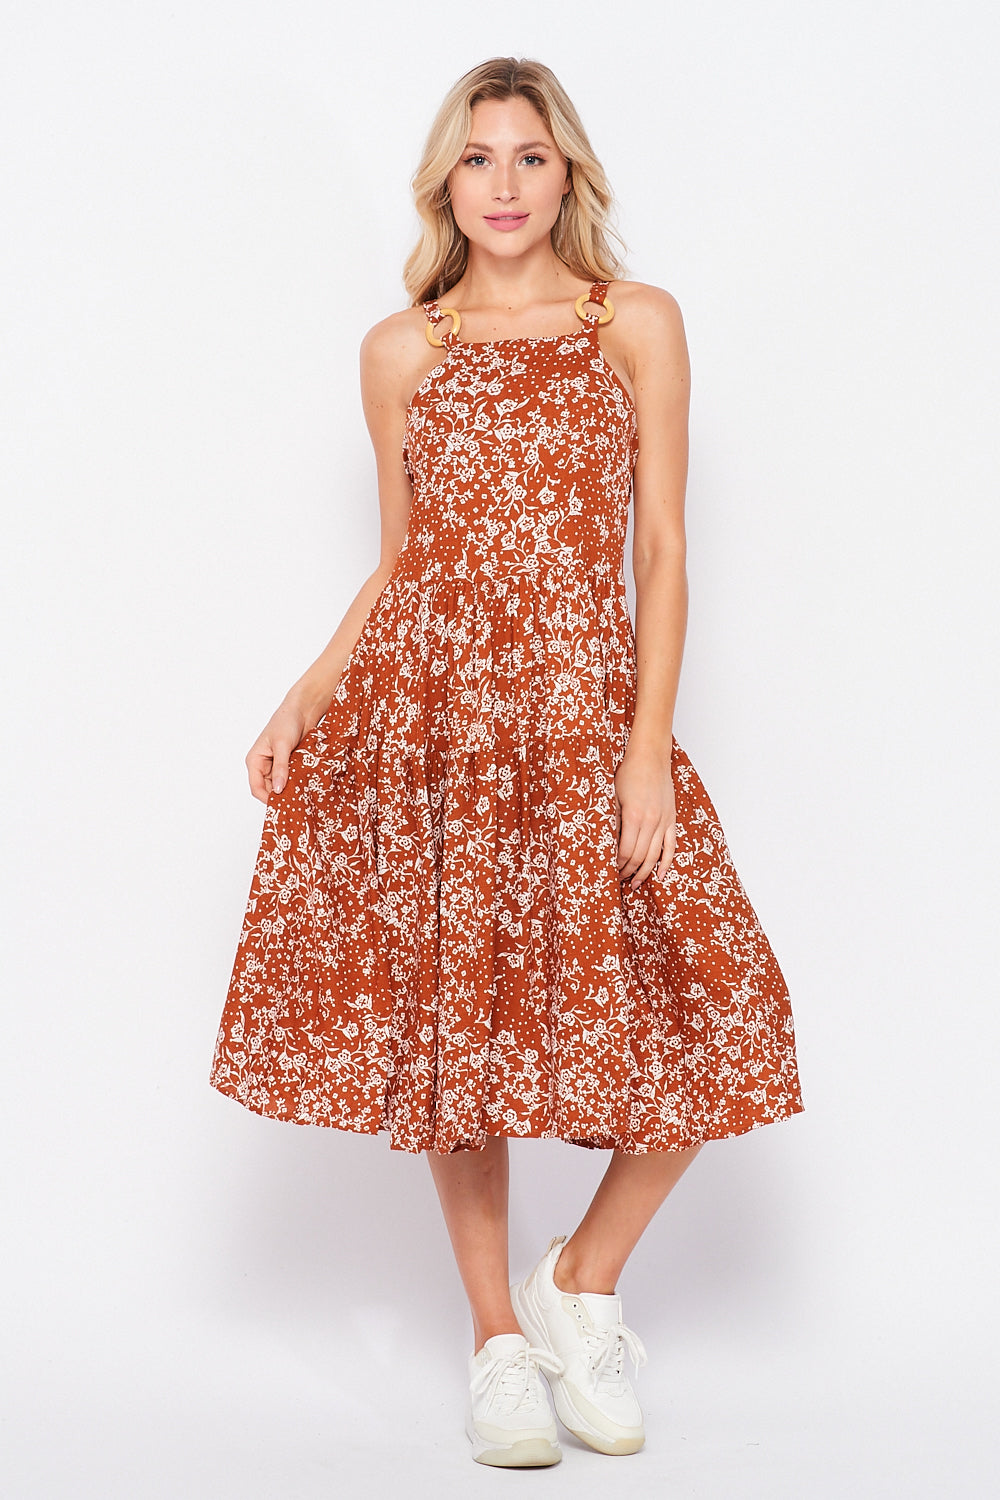 Athena Open Back Dress | Rust Floral - Velvet Torch